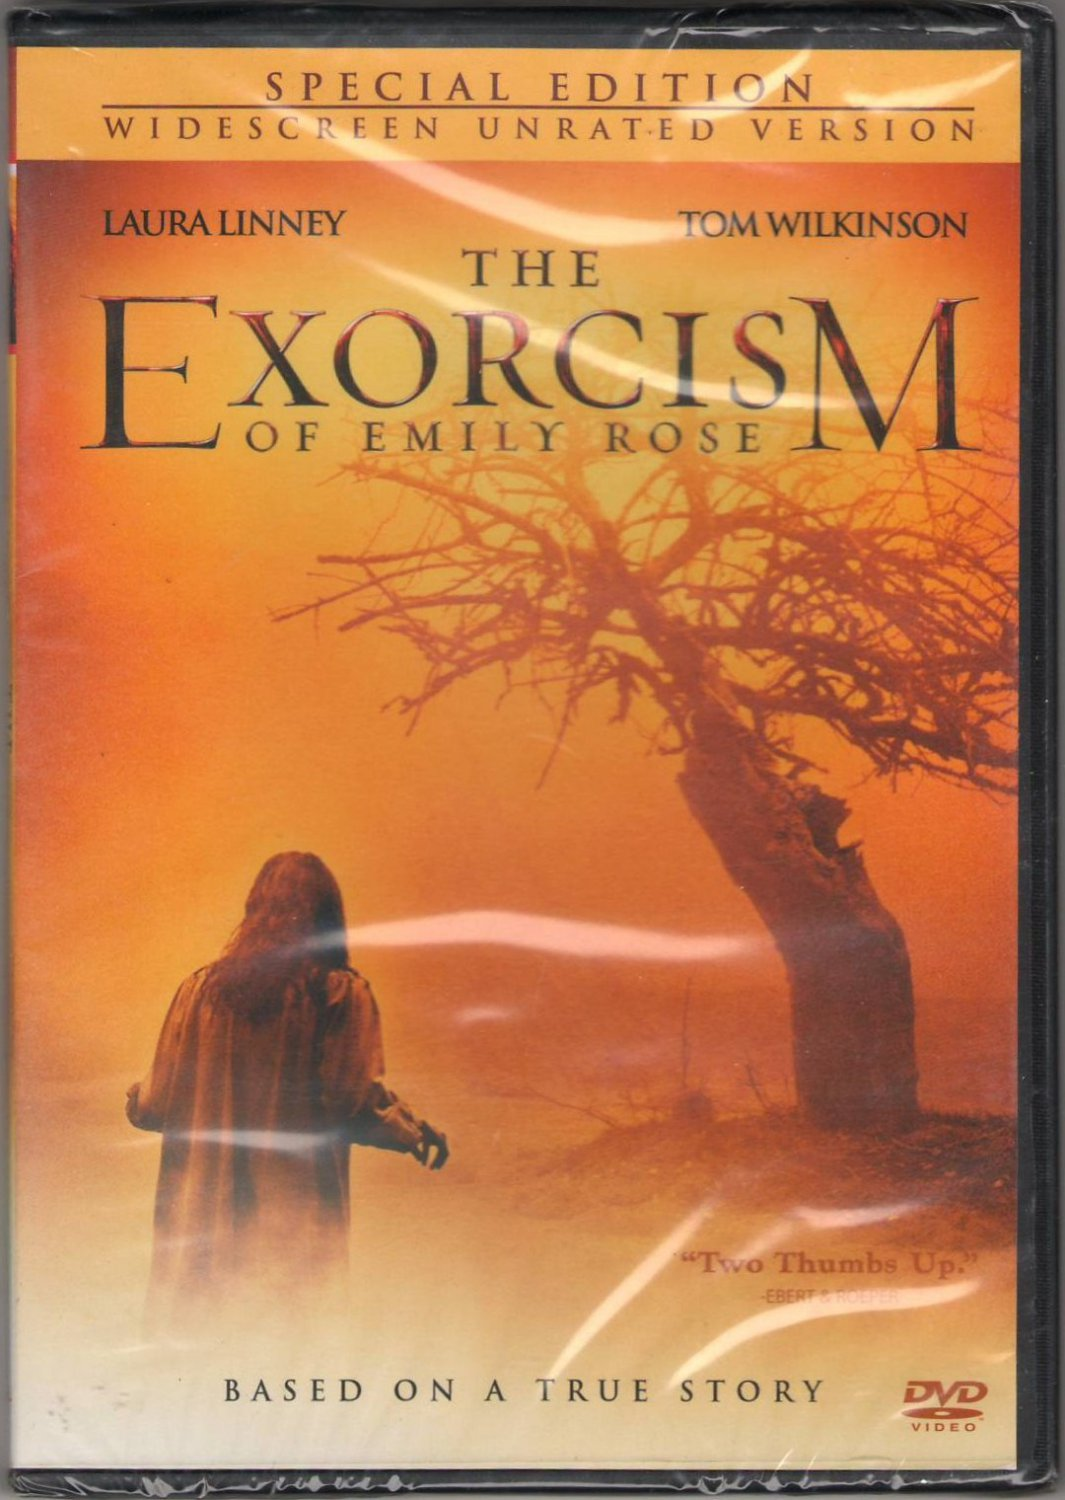 The Exorcism Of Emily Rose Laura Linney Tom Wilkinson Widscreen Movie Special Edition Region 1 DVD